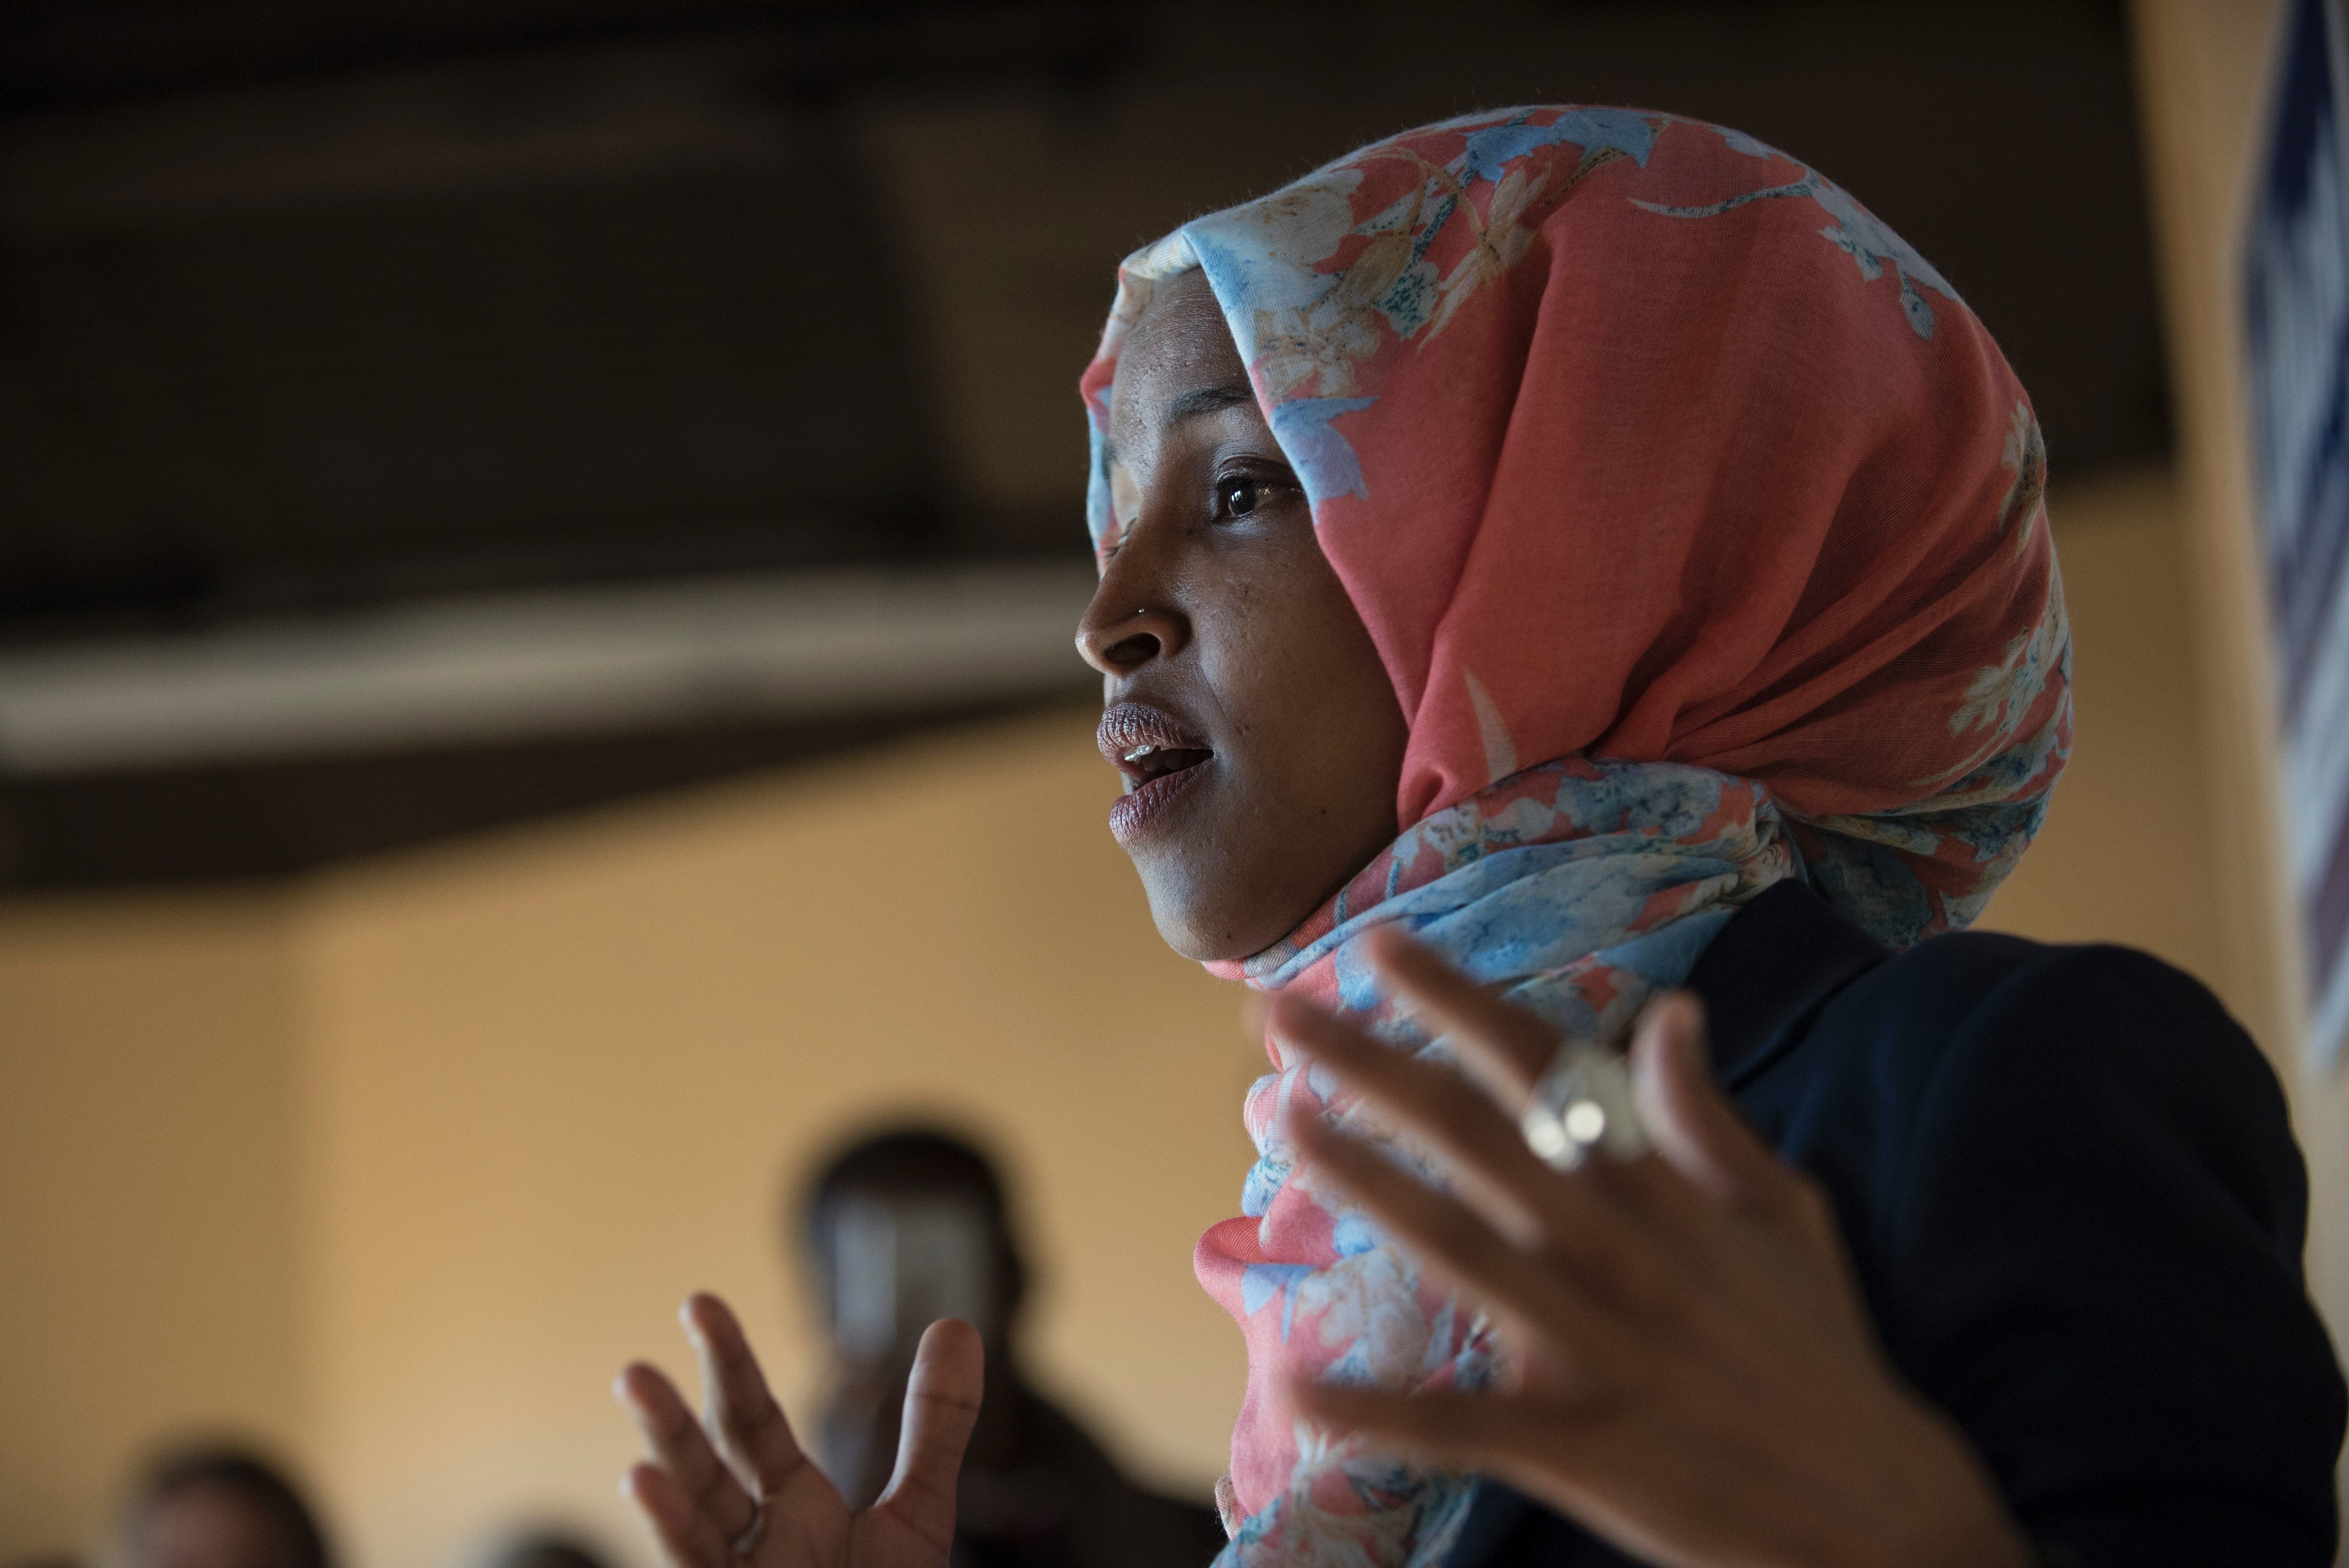 Ilhan Omar, candidate for State Representative for District 60B in Minnesota, speaks to a group of volunteers on Election Day, November 8, 2016 in Minneapolis, Minnesota. Omar, a refugee from Somalia, would be the first Somali-American Muslim woman if elected. / AFP / STEPHEN MATUREN        (Photo credit should read STEPHEN MATUREN/AFP/Getty Images)